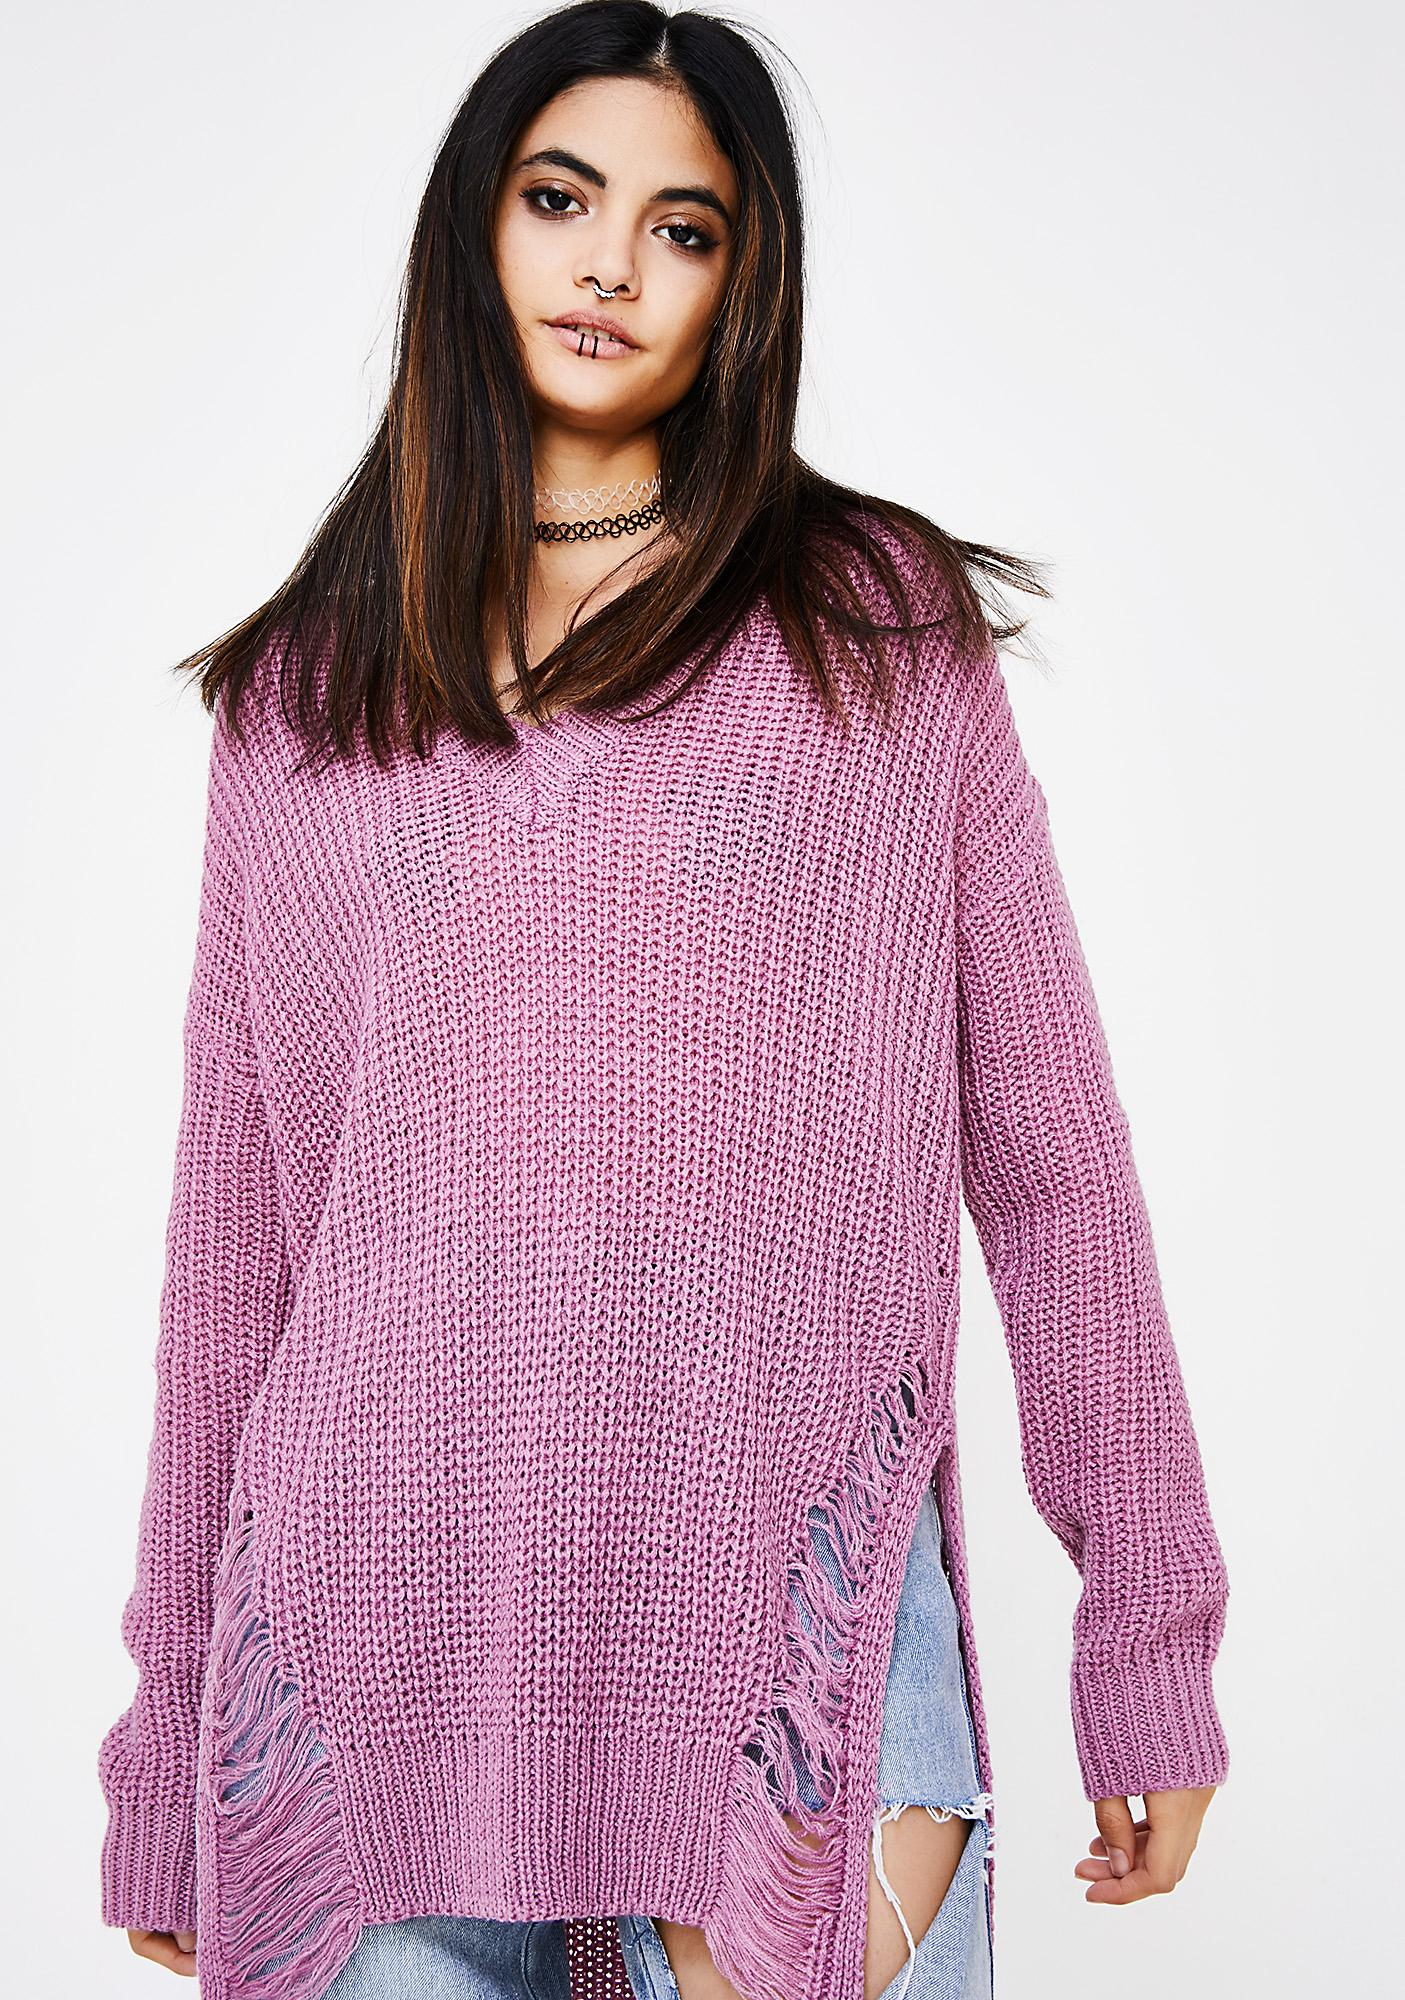 Dreamlover Distressed Sweater